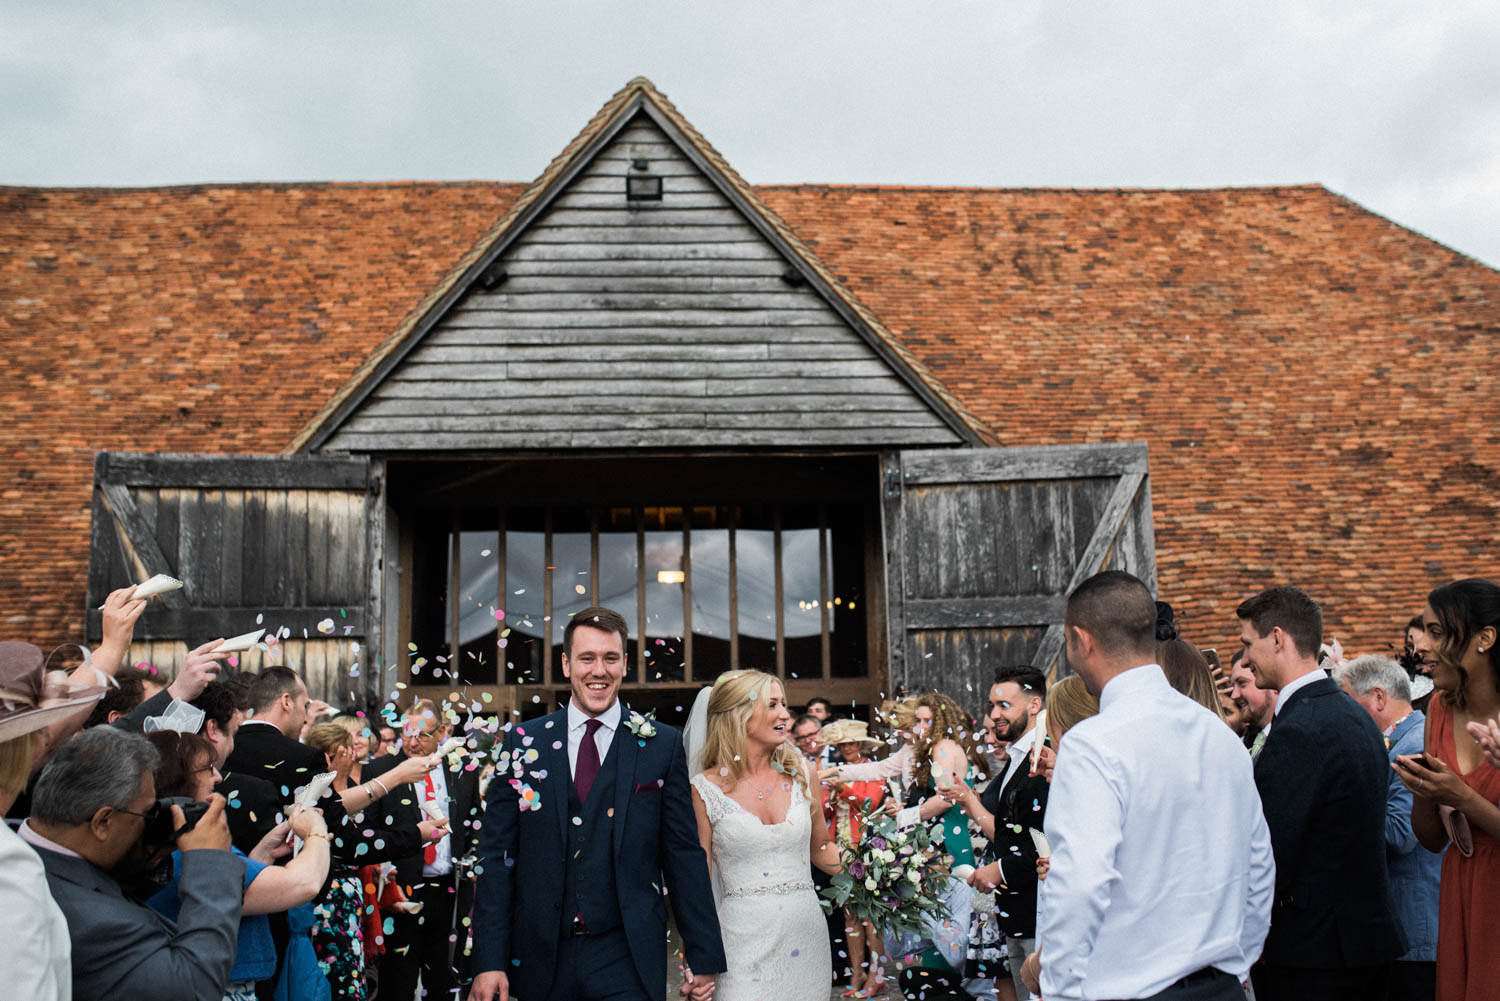 ufton-court-reading-wedding-photographer-lindsleyweddings-15.jpg